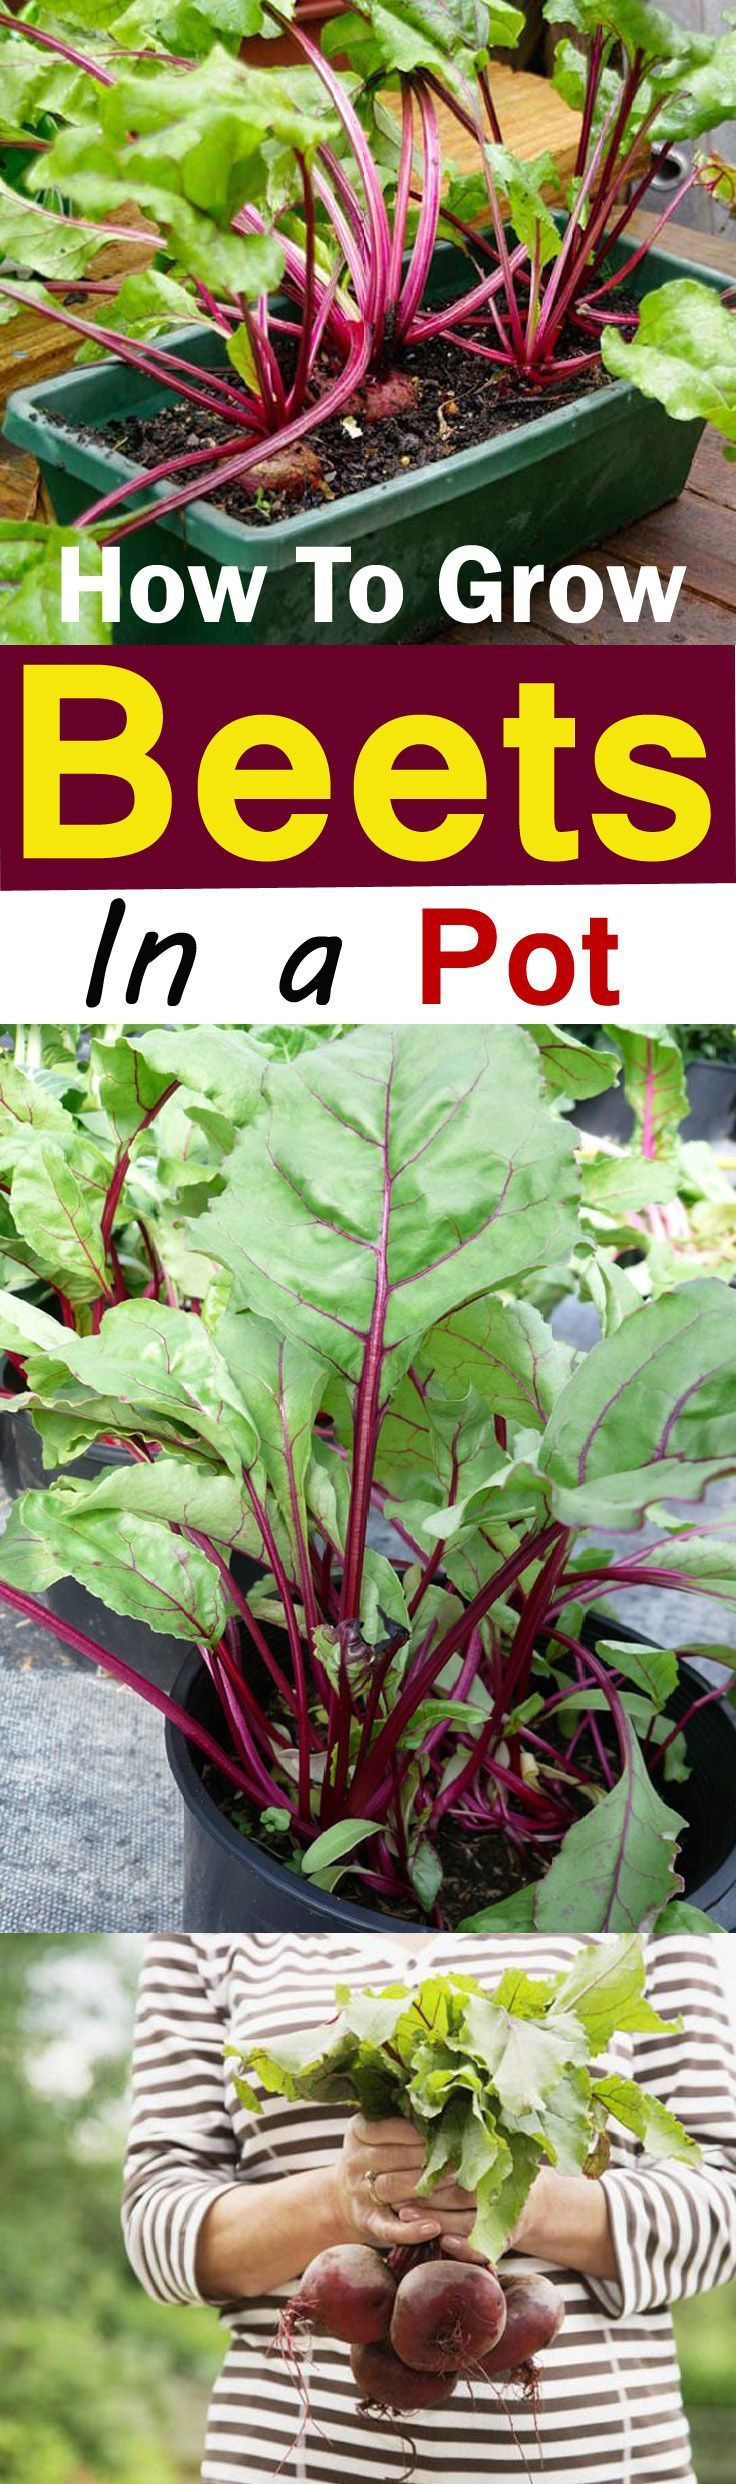 Growing Beets In Containers How To Grow Beets In Pots Growing Vegetables Growing Beets Indoor Vegetable Gardening